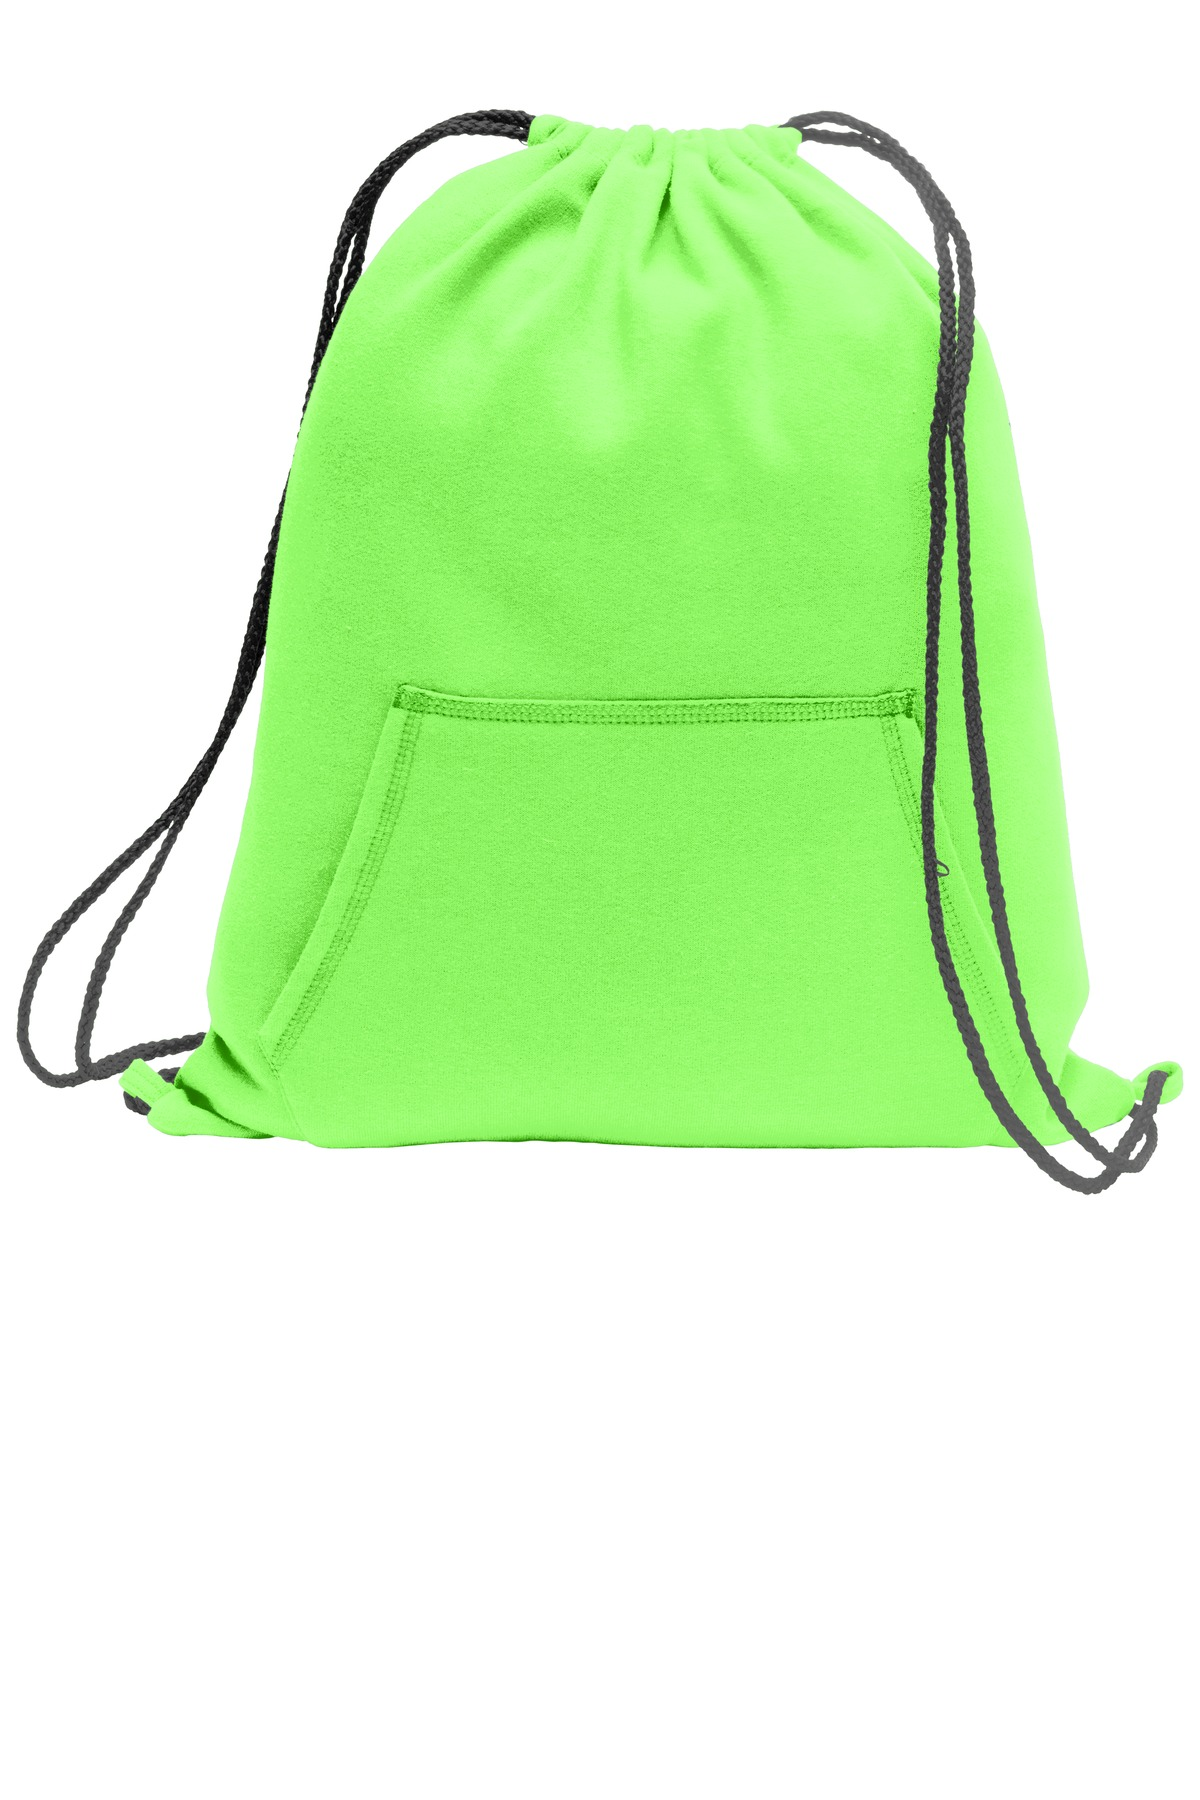 Port & Company ®  Core Fleece Sweatshirt Cinch Pack. BG614 - Neon Green